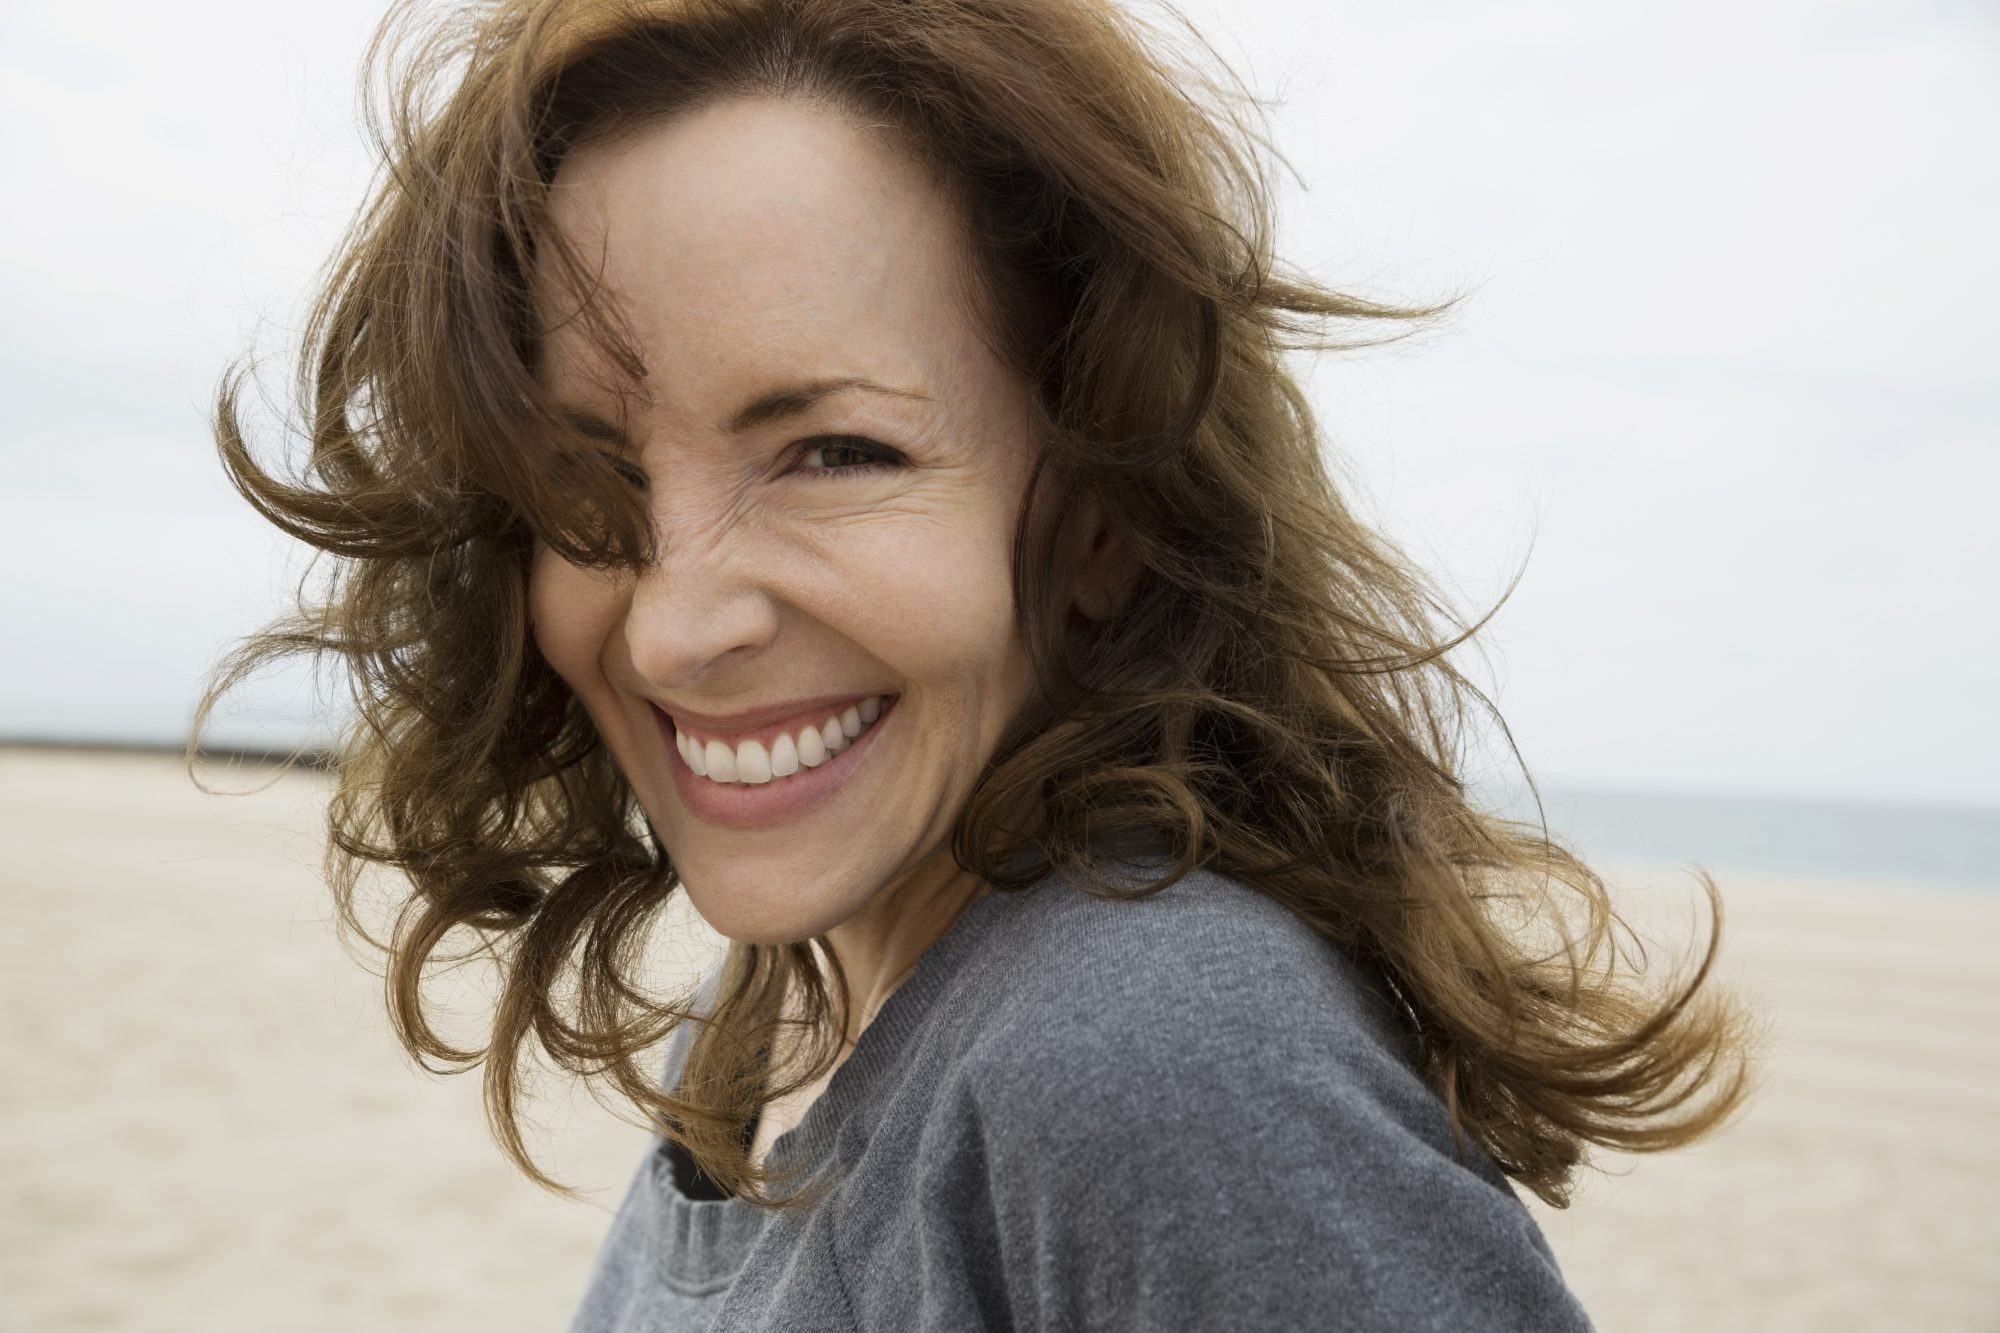 Woman Walking on Beach with Hair Blowing